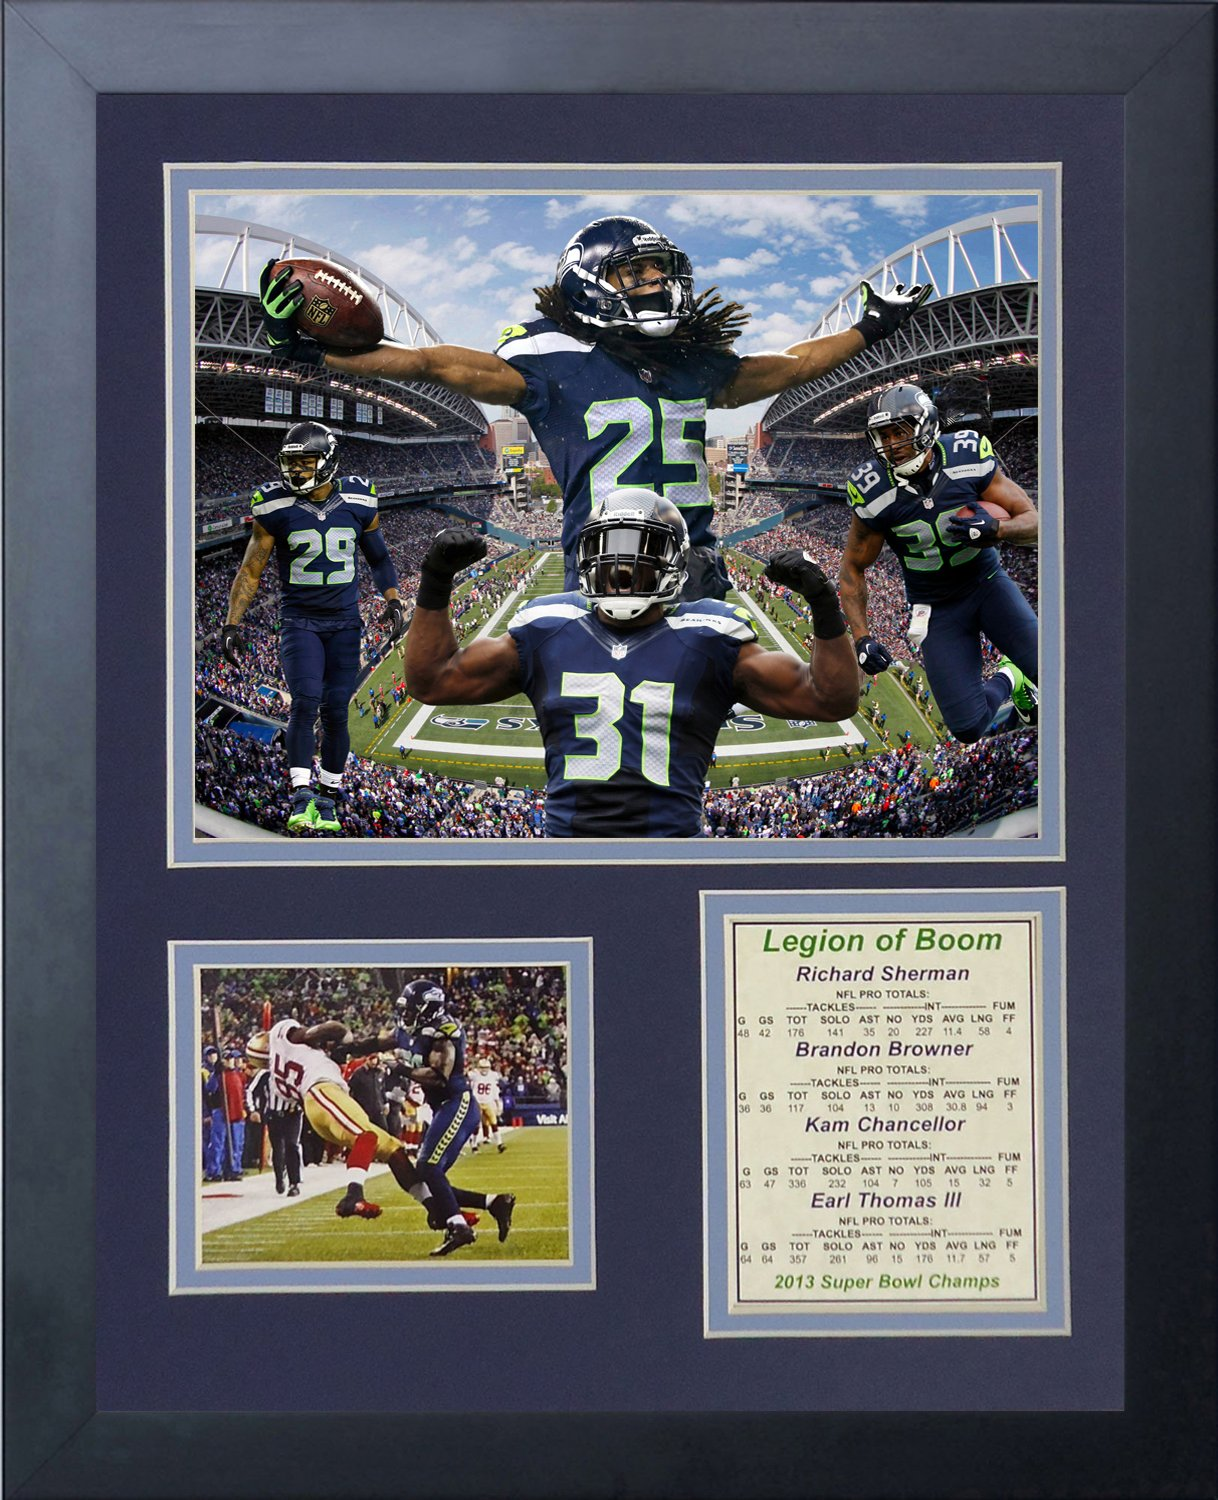 Amazon legends never die 2014 seattle seahawks super bowl amazon legends never die 2014 seattle seahawks super bowl xlviii champions legion of boom framed photo collage 11x14 inch sports outdoors jeuxipadfo Choice Image